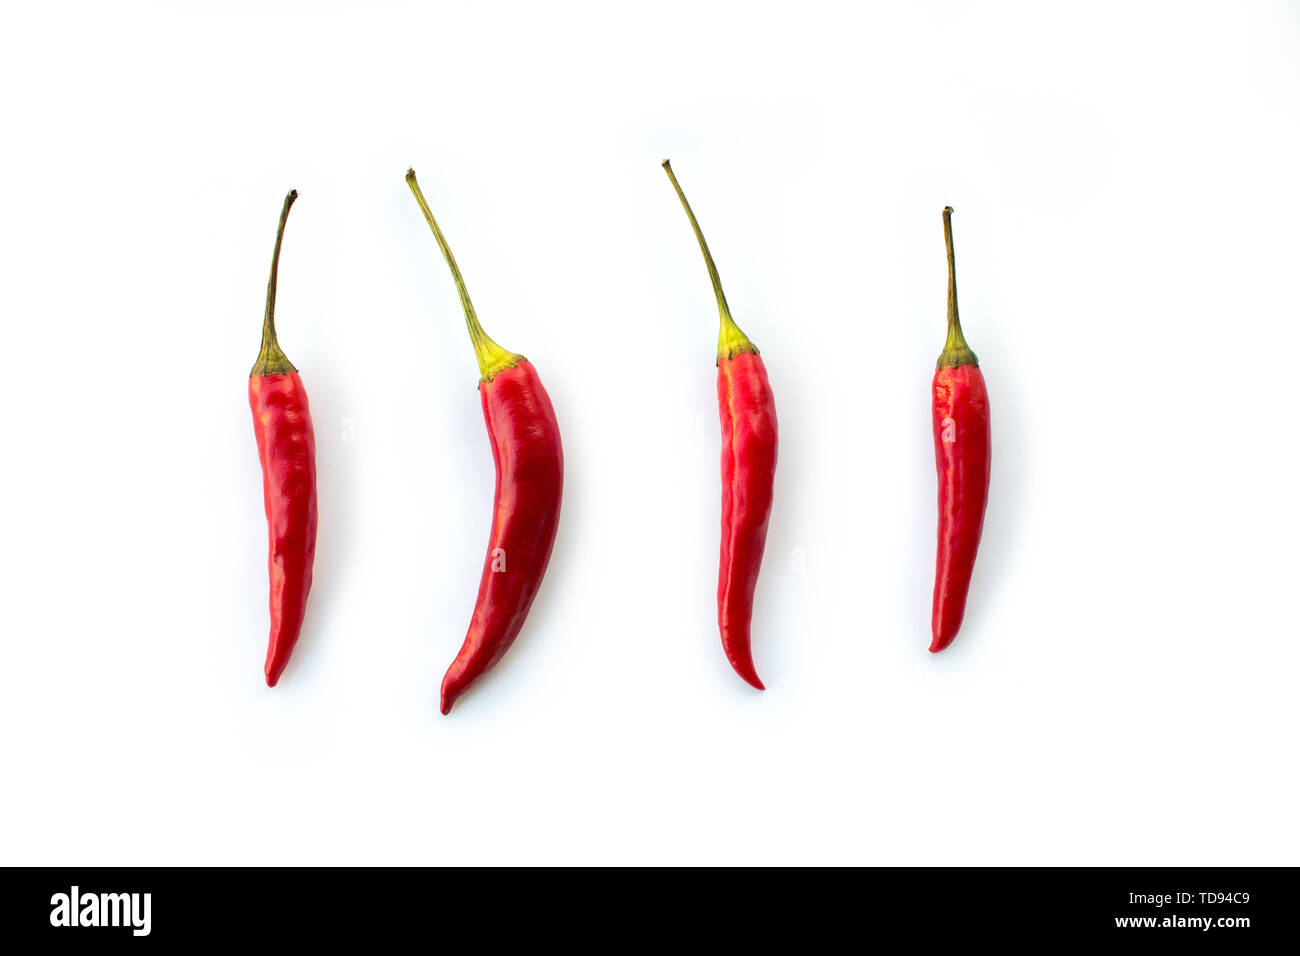 four red chilies - Stock Image